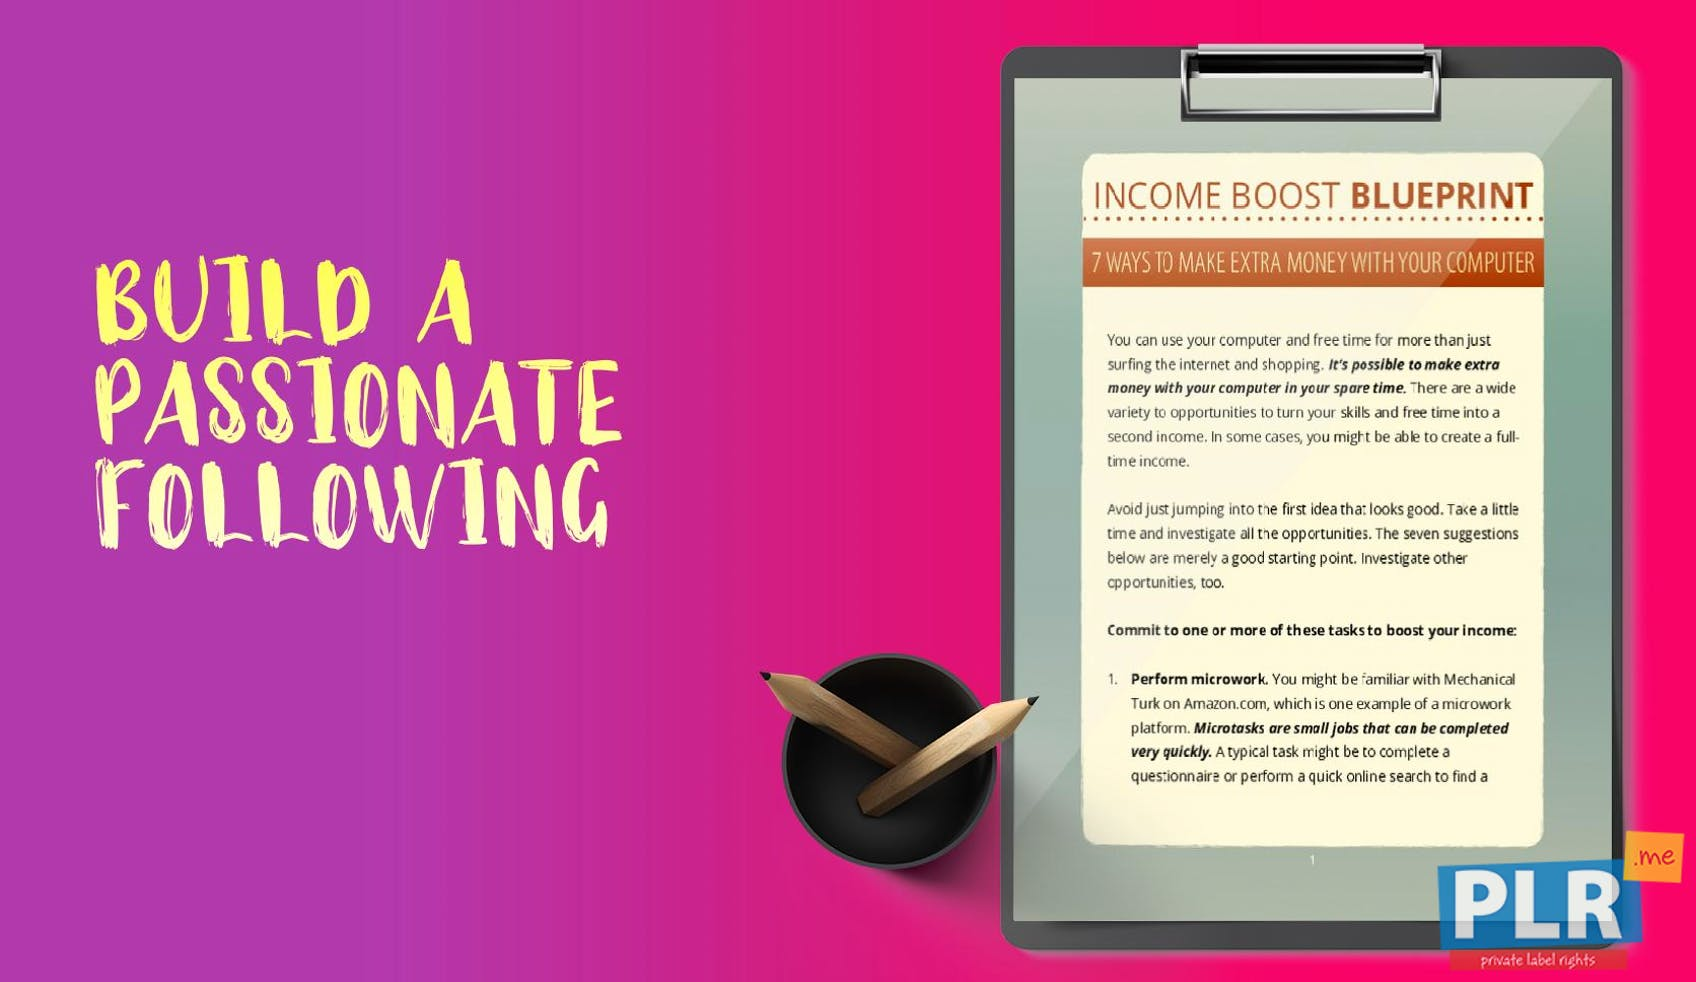 Income Boost Blueprint 7 Ways To Make Extra Money With Your Computer